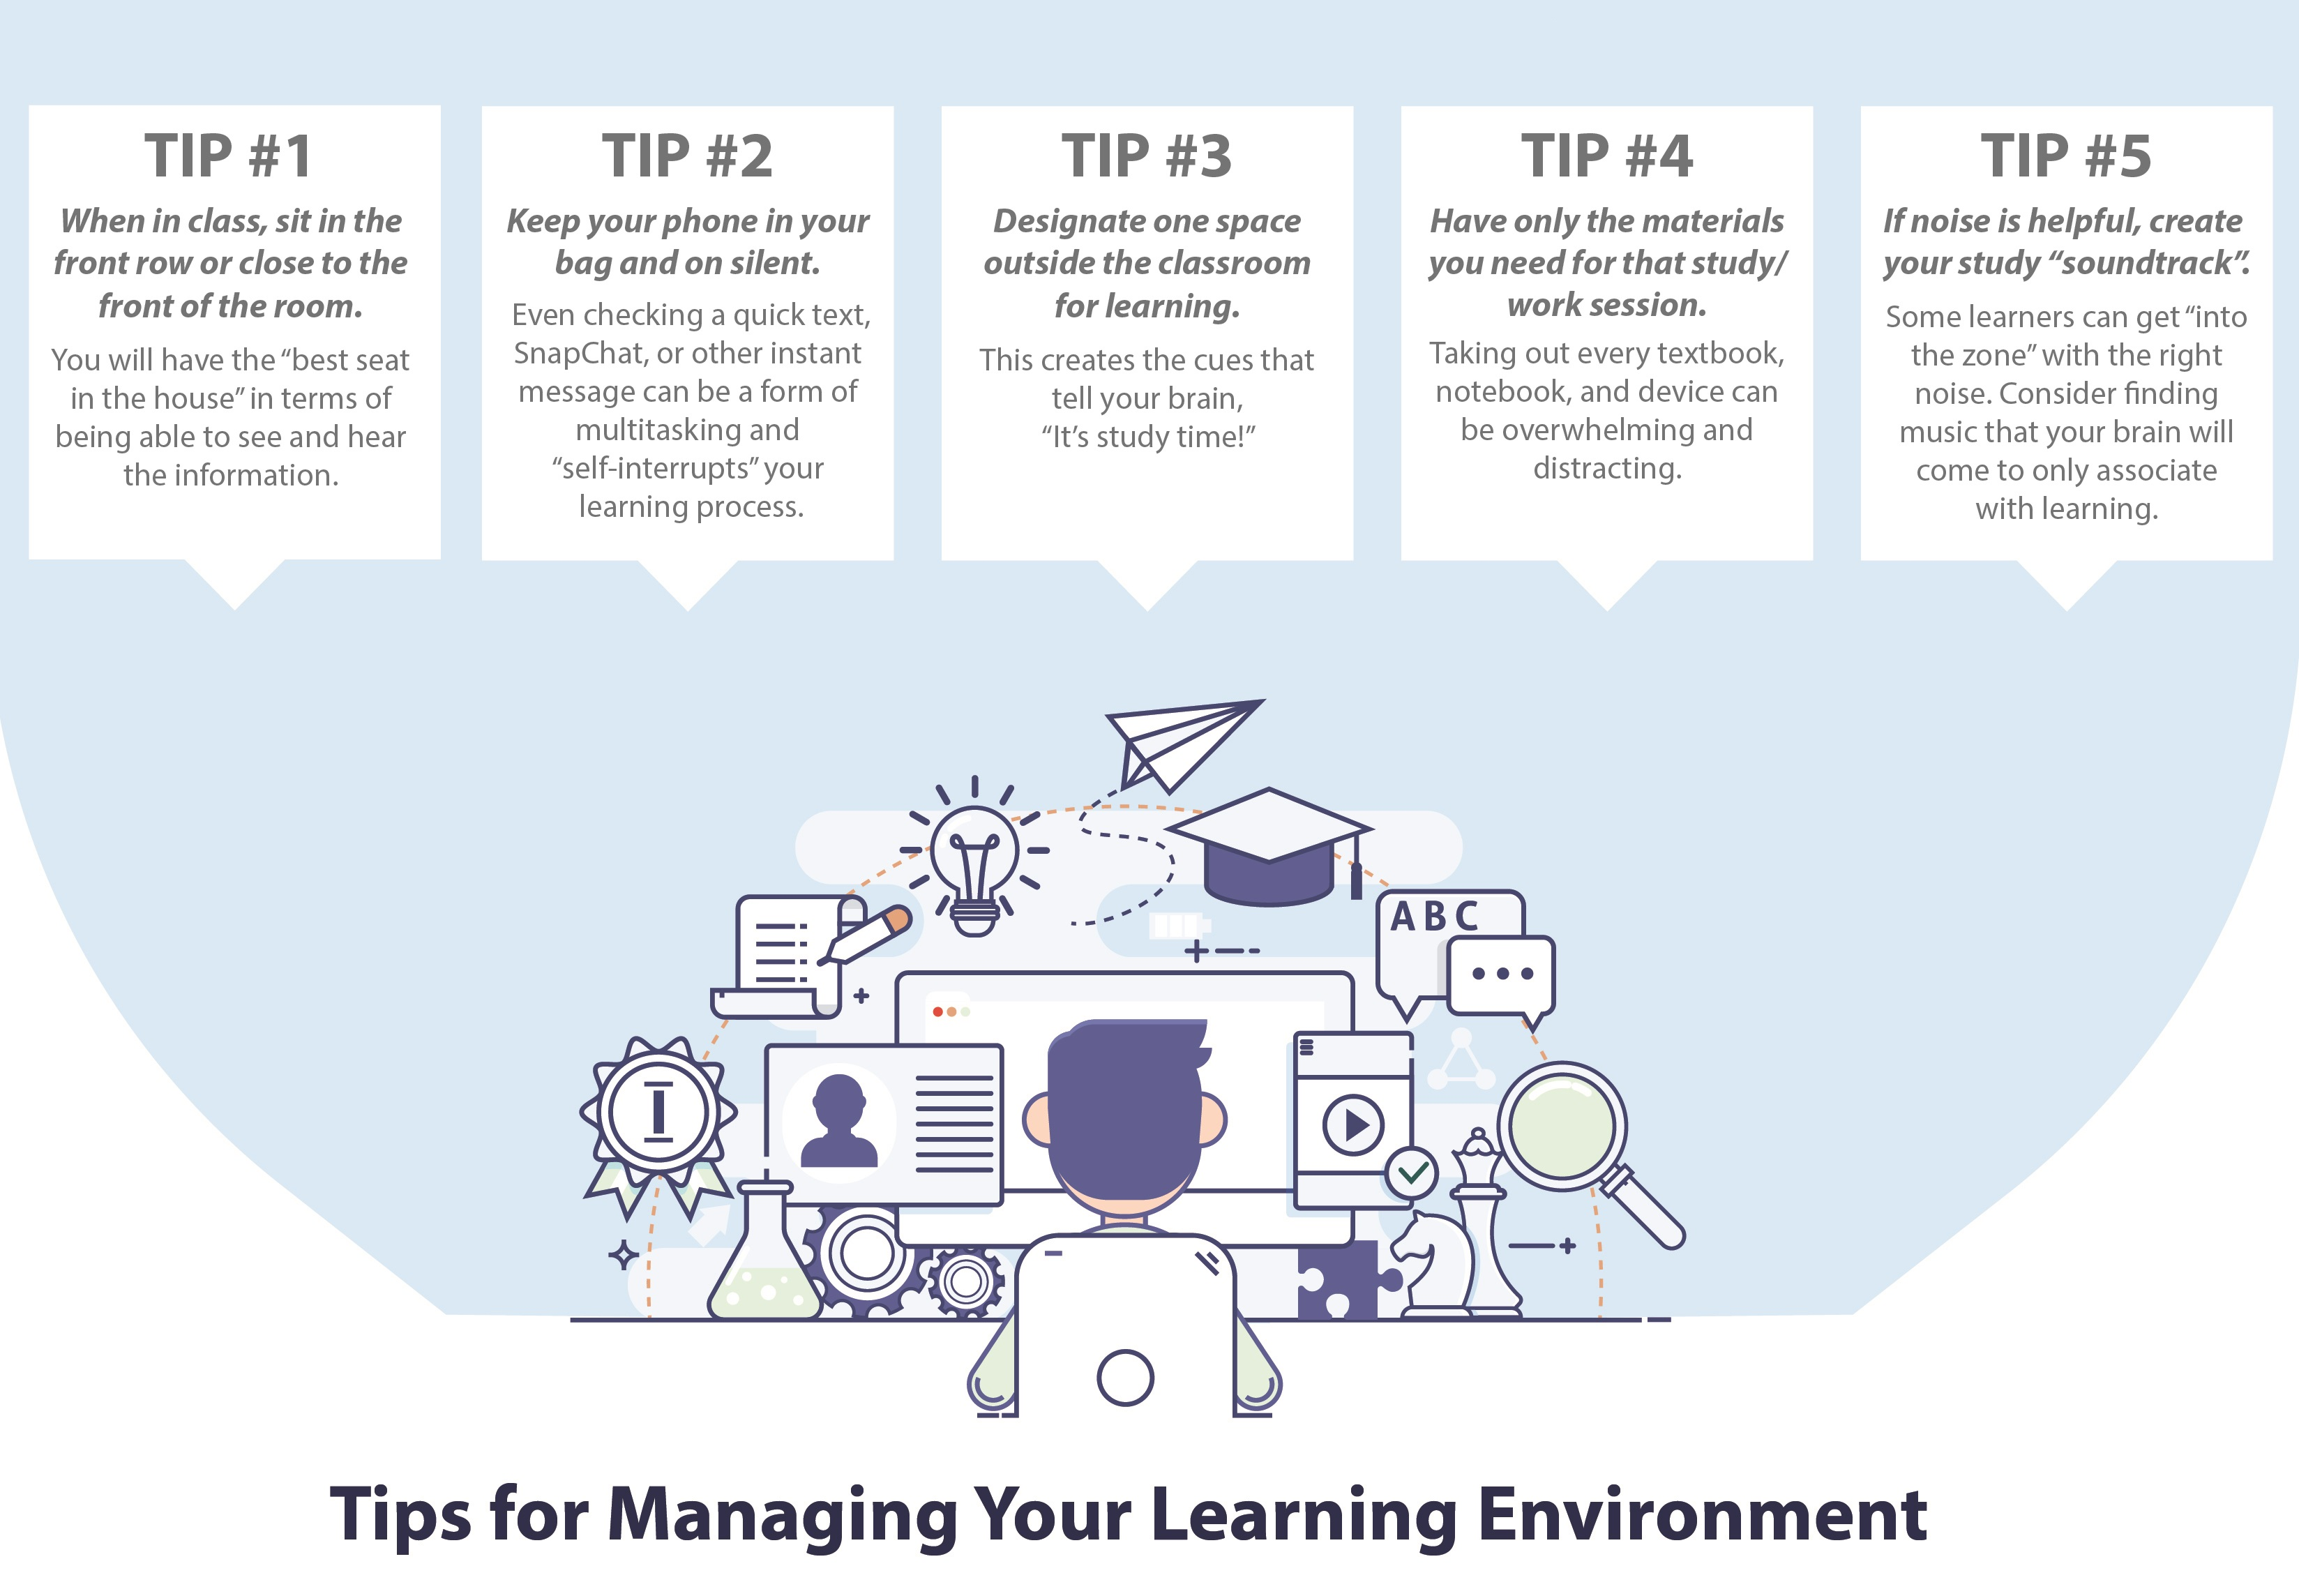 An infographic with tips on how to manage your learning environment.